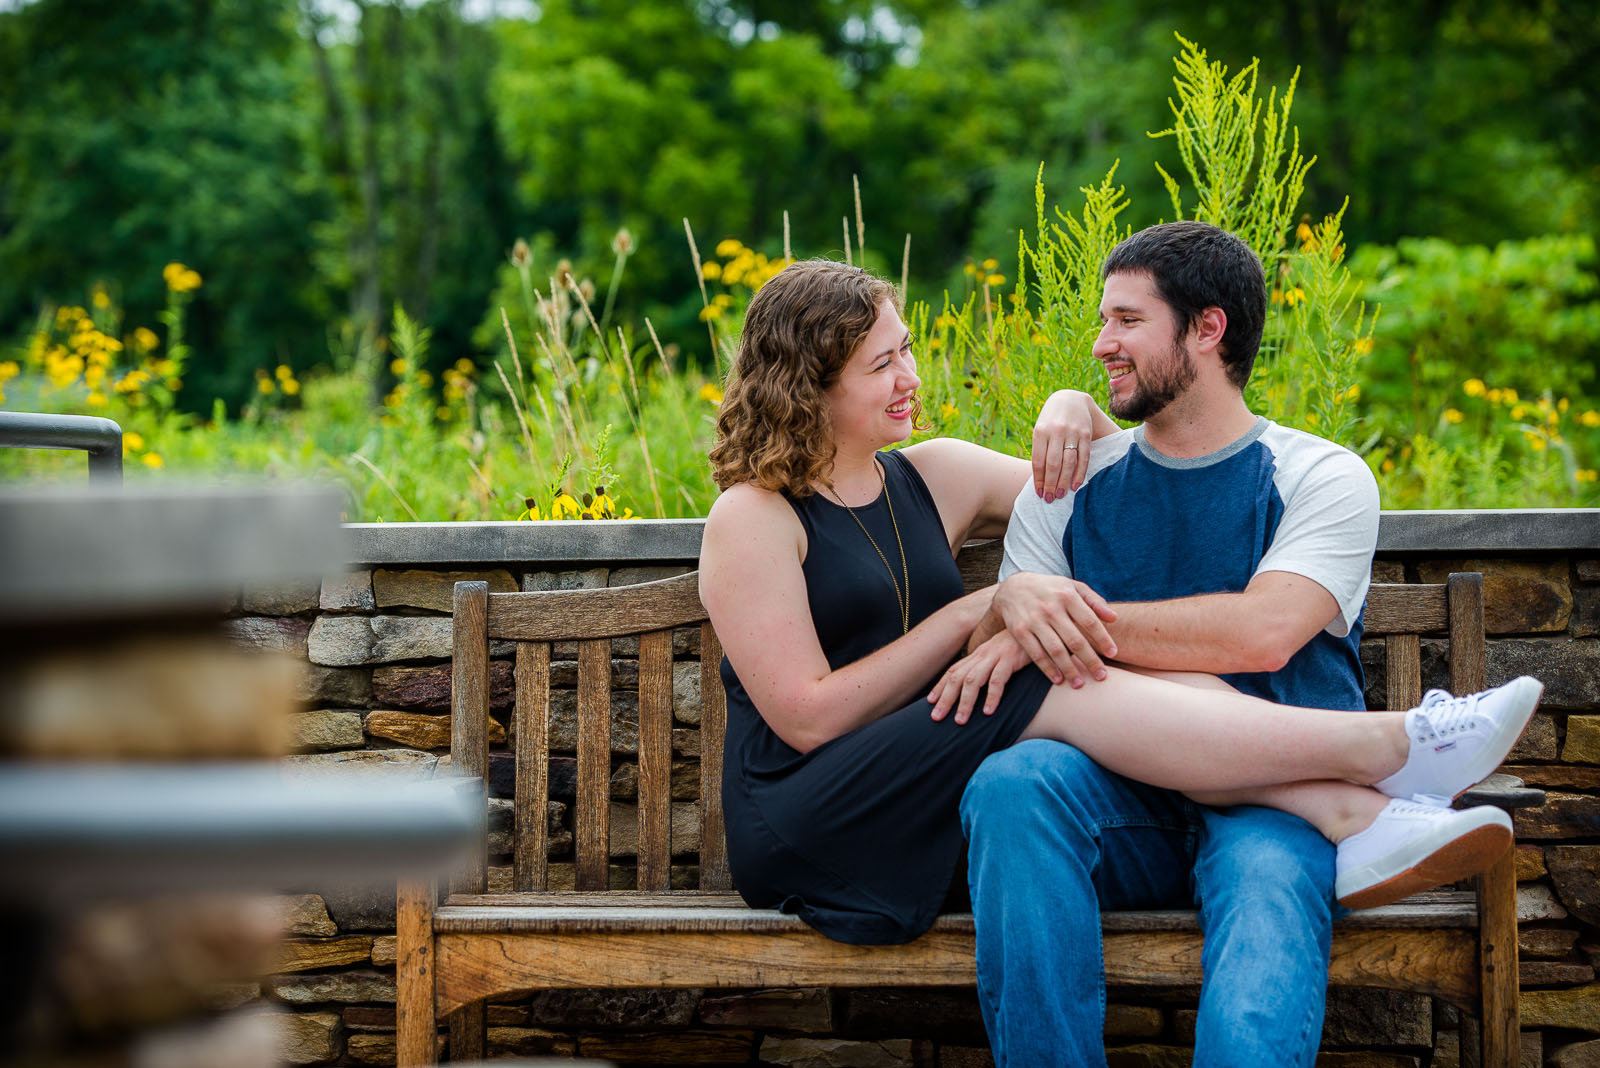 Eric_and_Christy_Photography_Blog_Engagement_Andrea_Clint-1